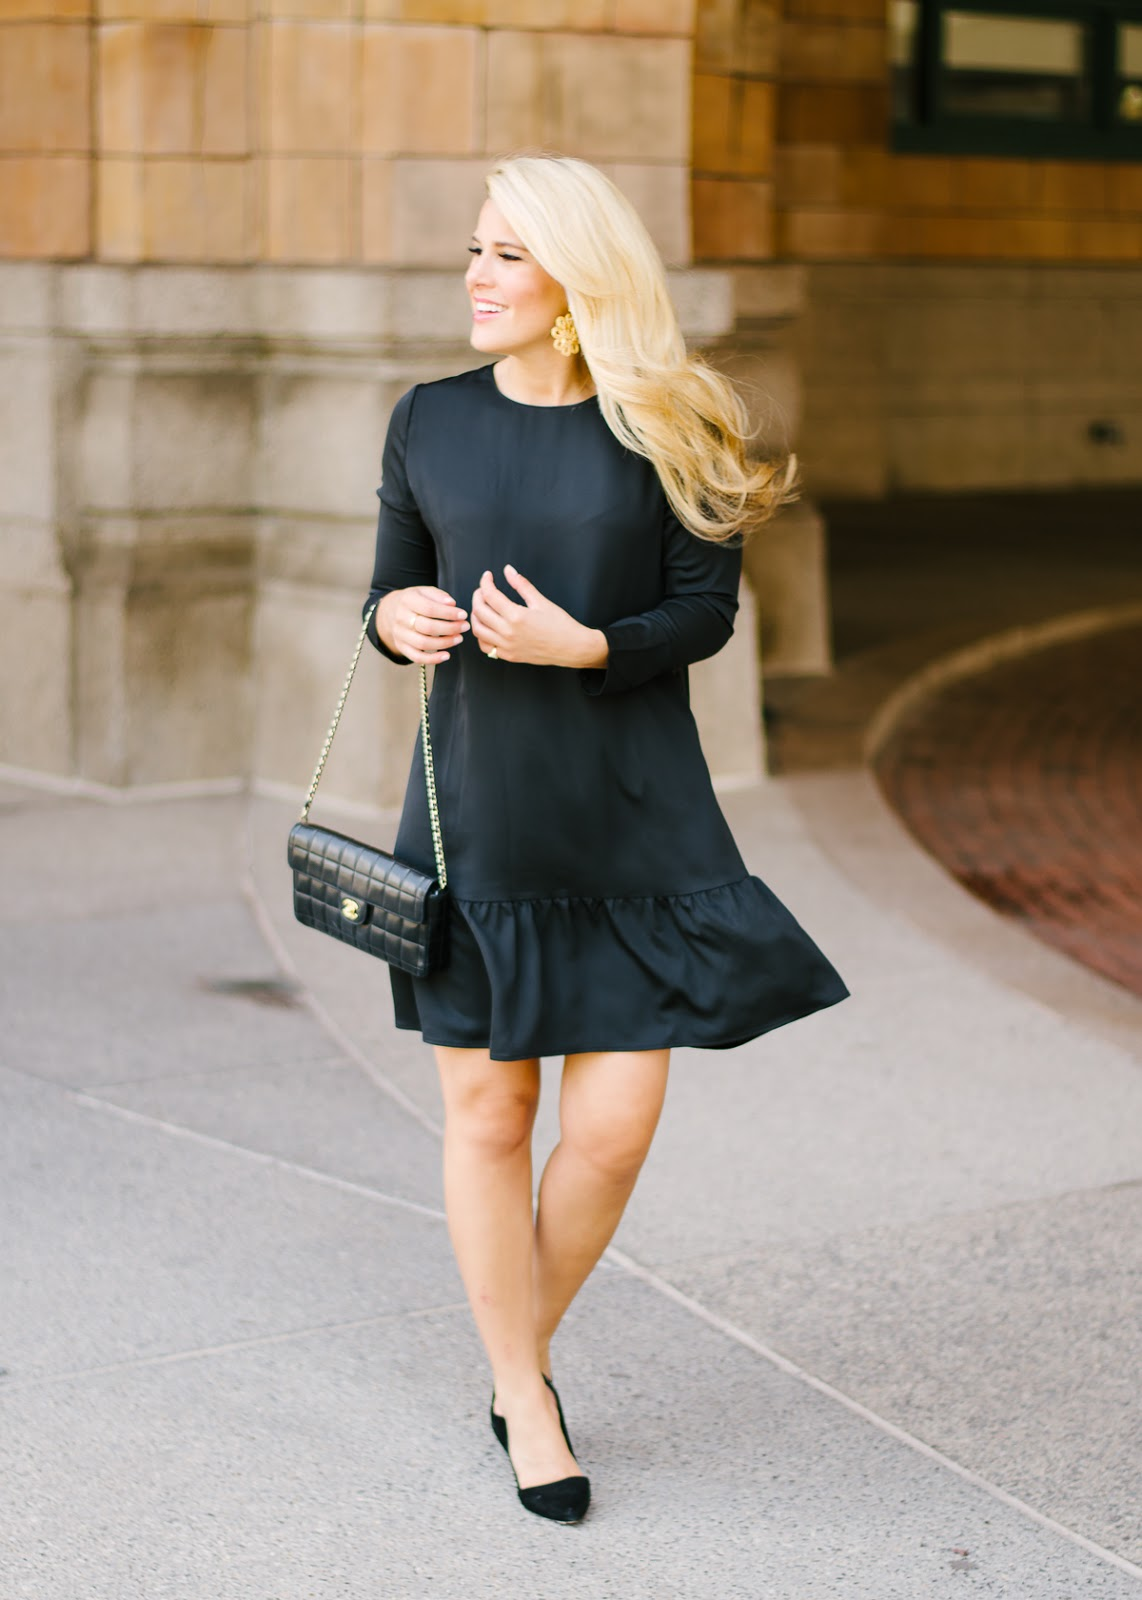 Summer Wind Little Black Dress Under 100 For Work And Play